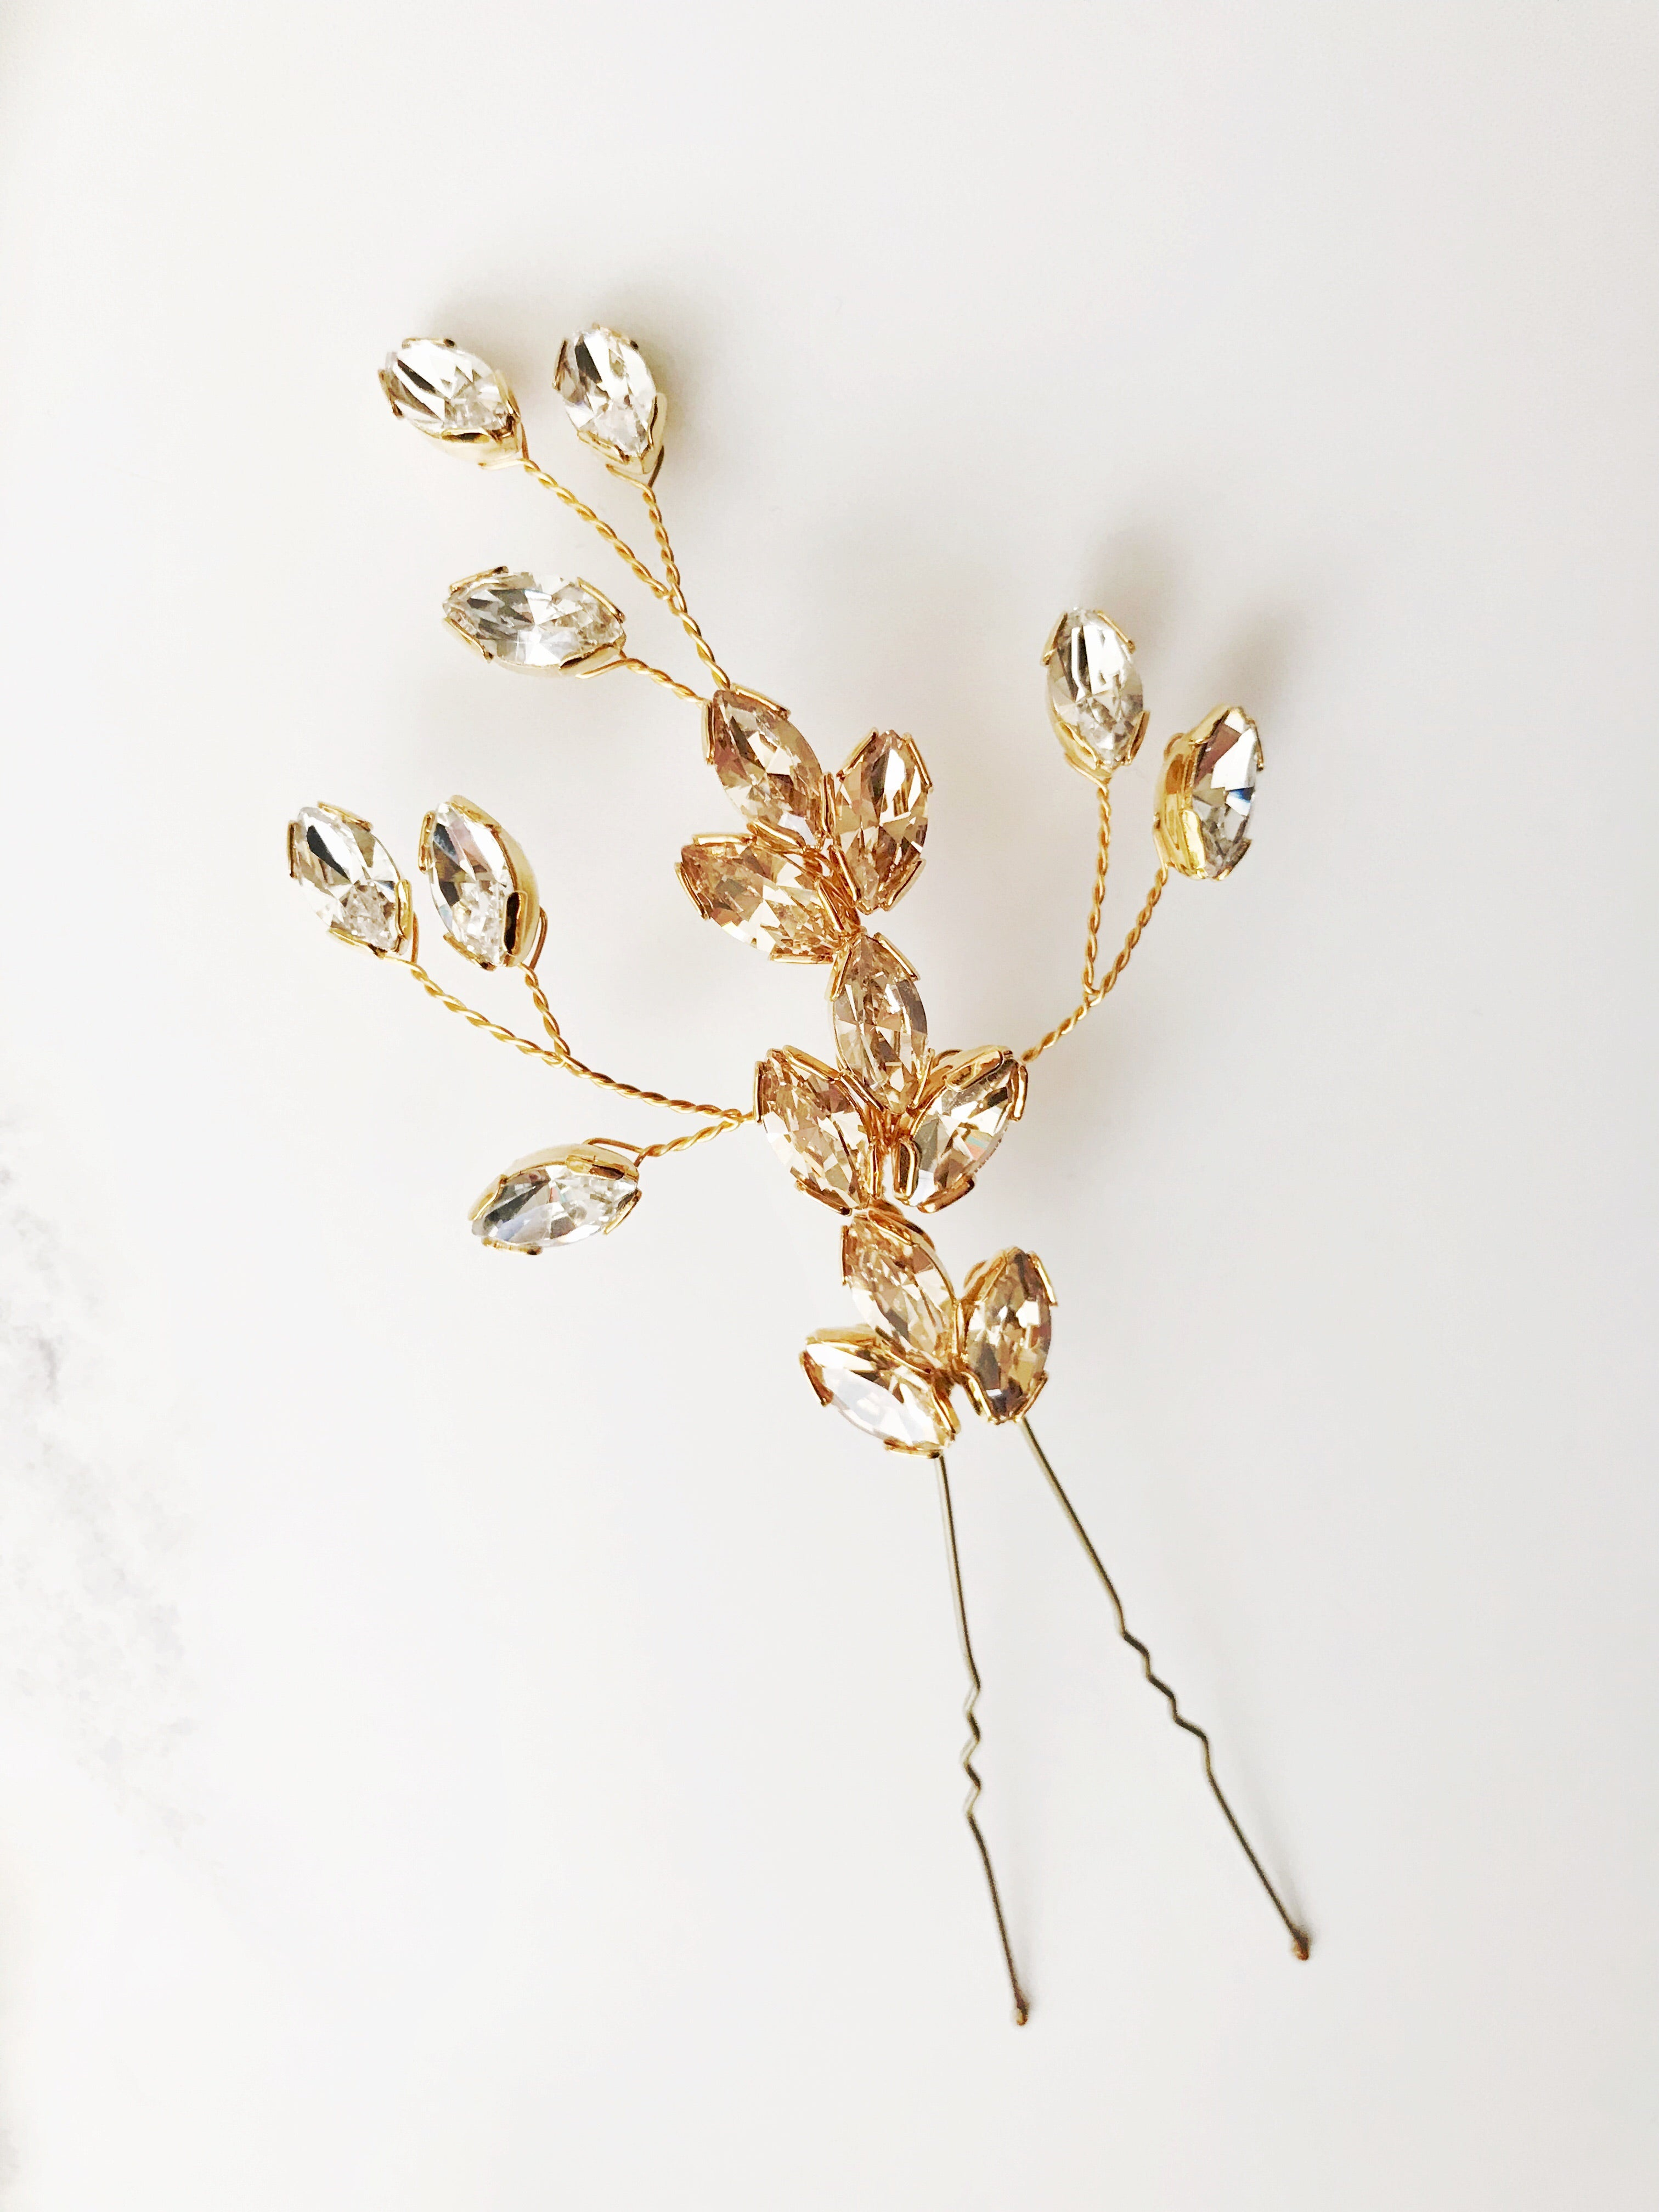 Large Swarovski crystal wedding hair pin in gold - Nova